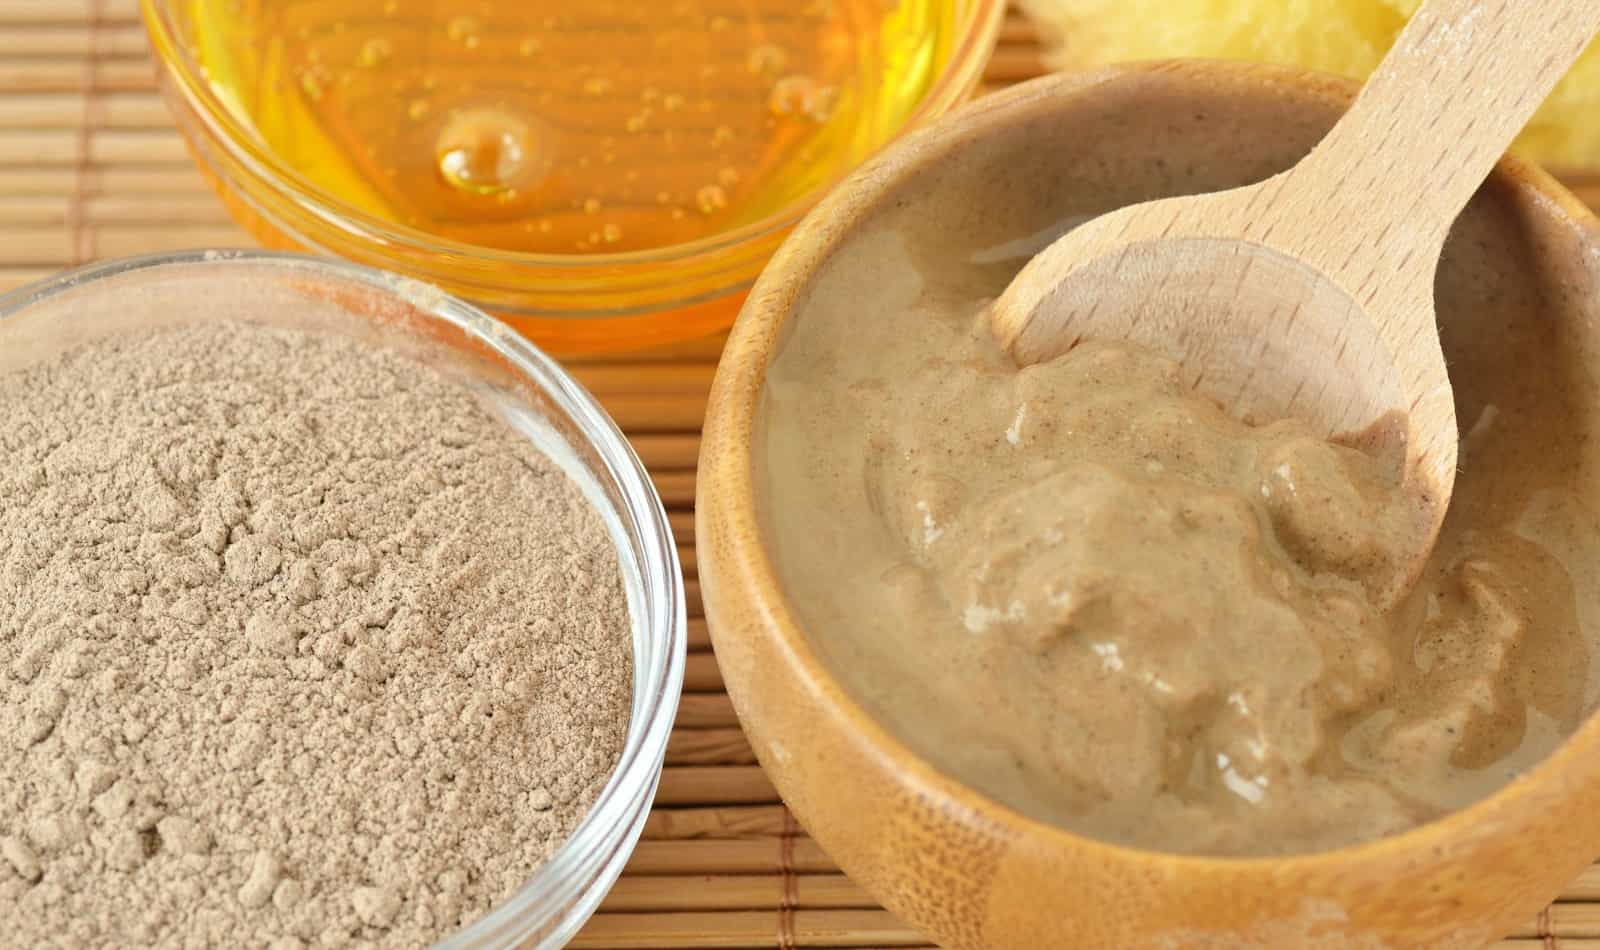 What is rhassoul clay and why should it be part of your skin care routine? Read on for 6 amazing rhassoul clay benefits to find out!